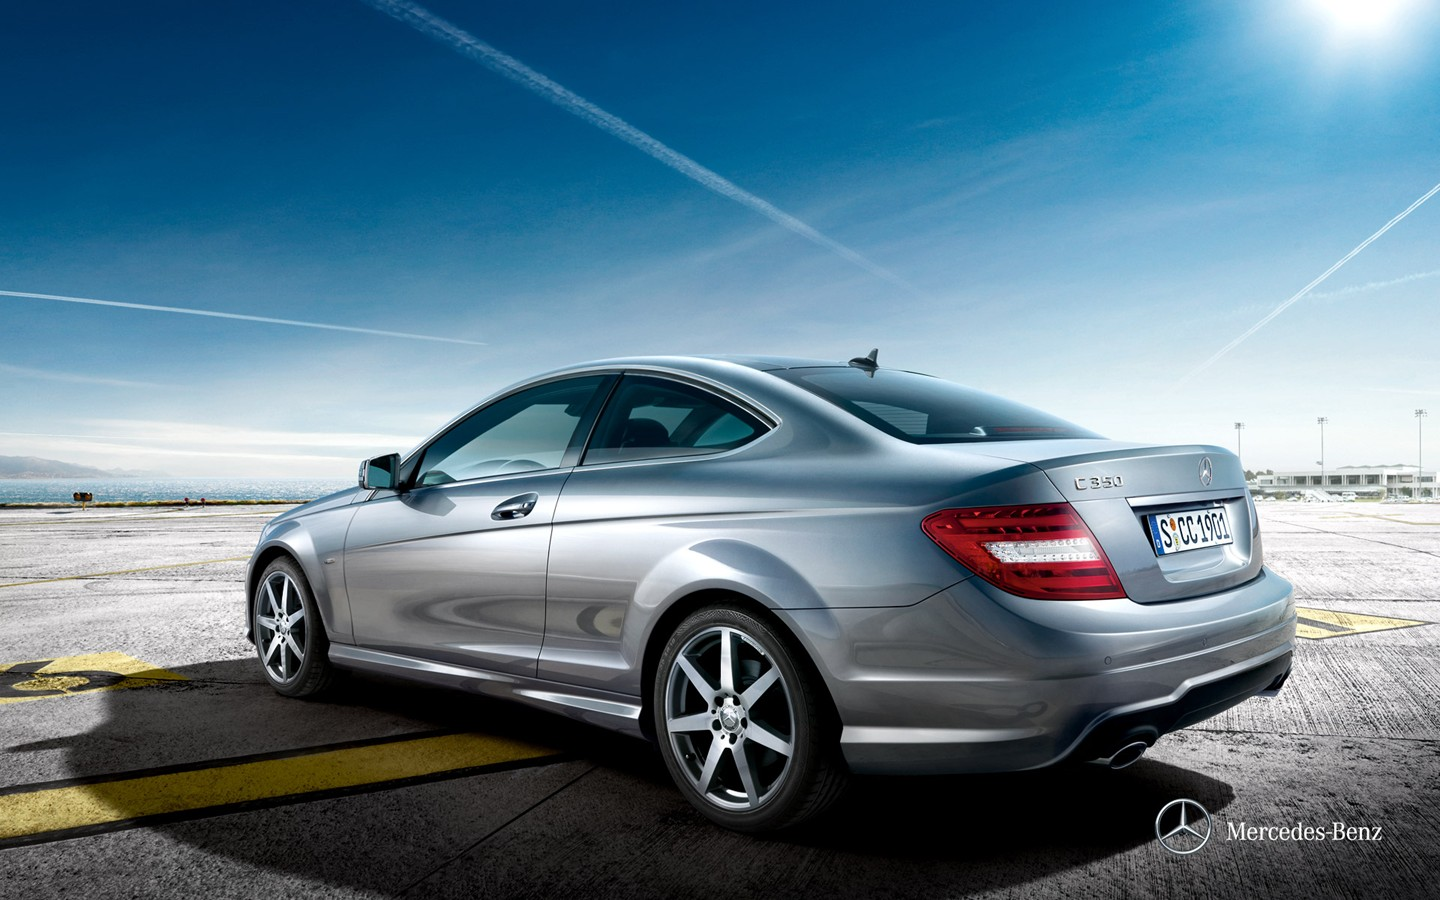 Mercedes-Benz C-Class Coupe two-door coupe wallpaper 30938